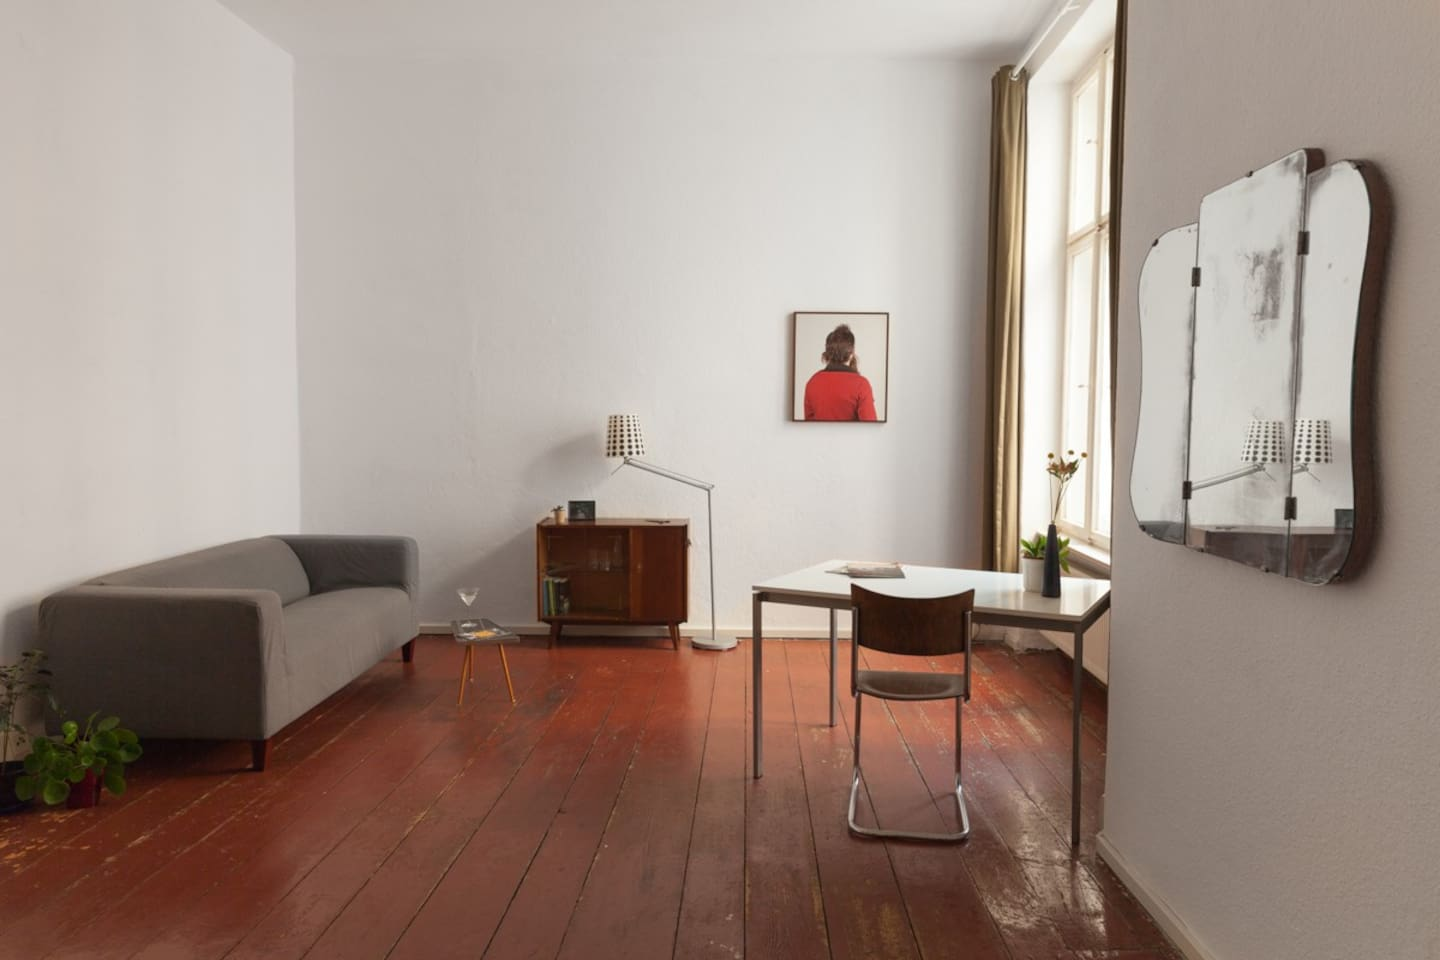 The 28m2 room is a so called 'Berliner Zimmer' (a spacious room that connects the front building apartment to the side wing) and has the original wooden floor in oxblood red